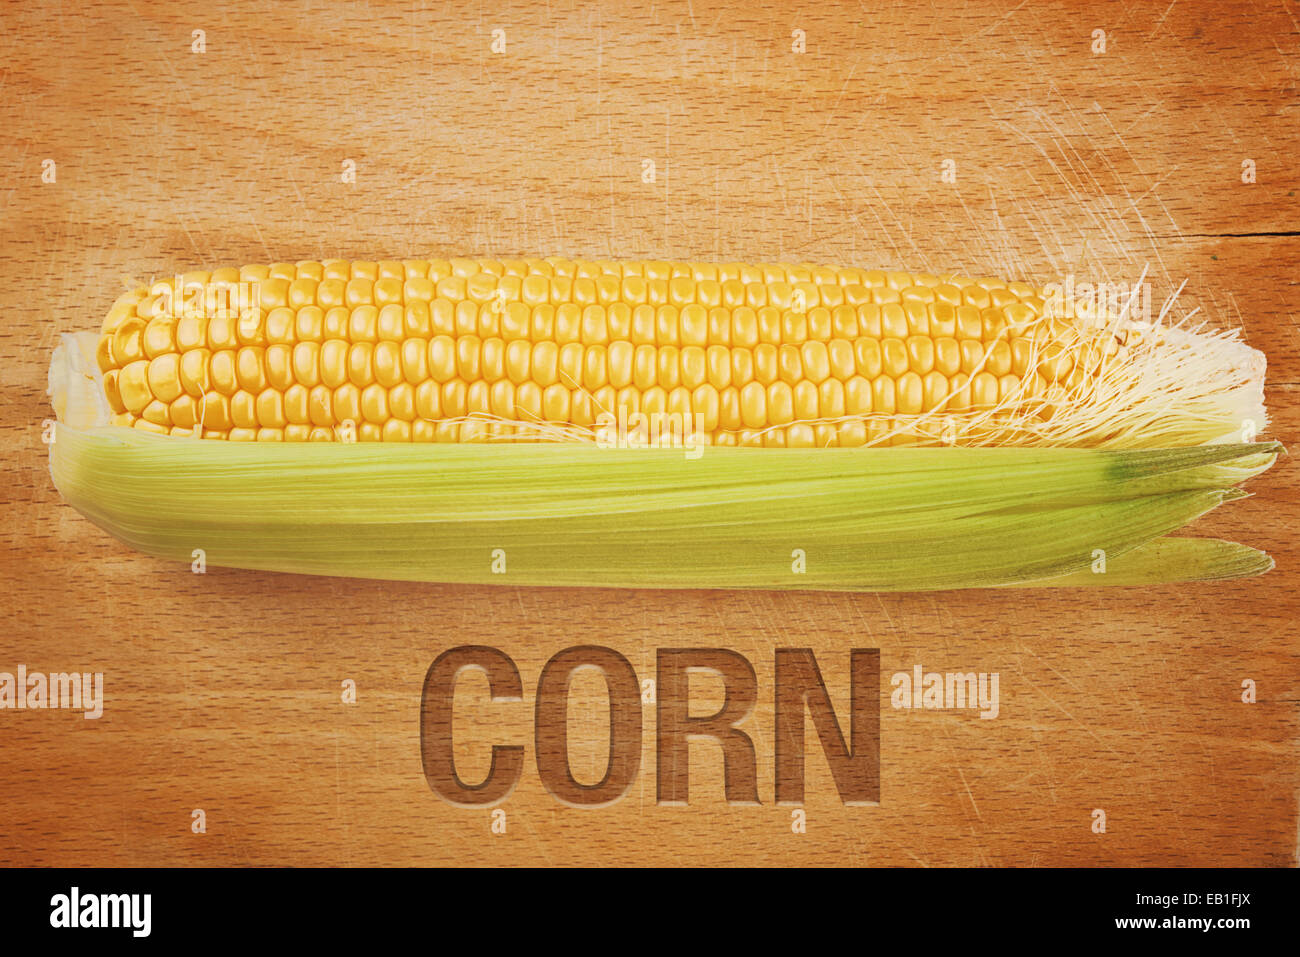 Beautiful fully developed Corn Maize Cob with golden seed on wooden background - Stock Image